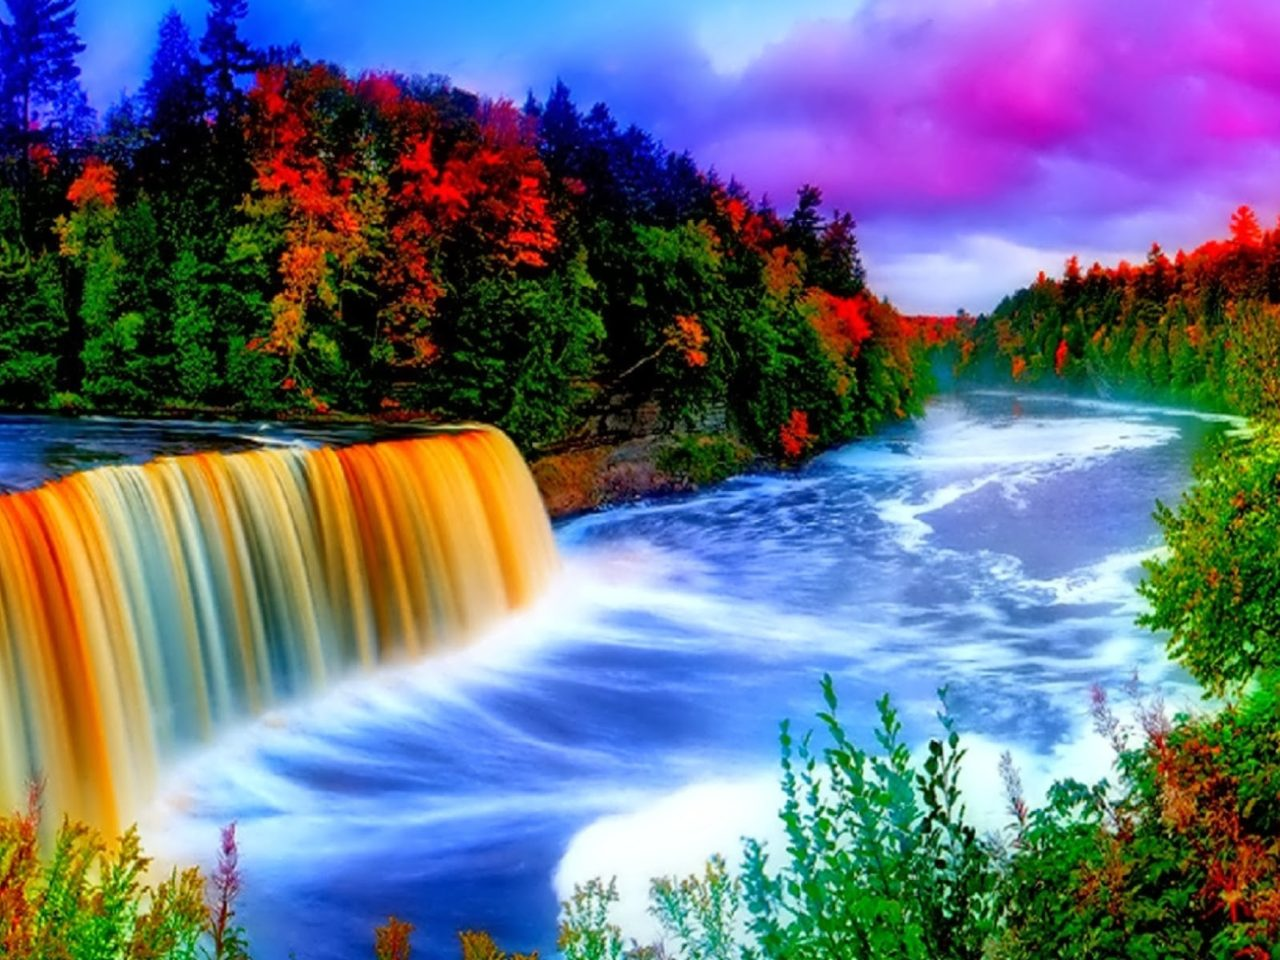 Victoria Falls Wallpapers High Resolution Colorful Waterfall Background 9665 Wallpapers13 Com